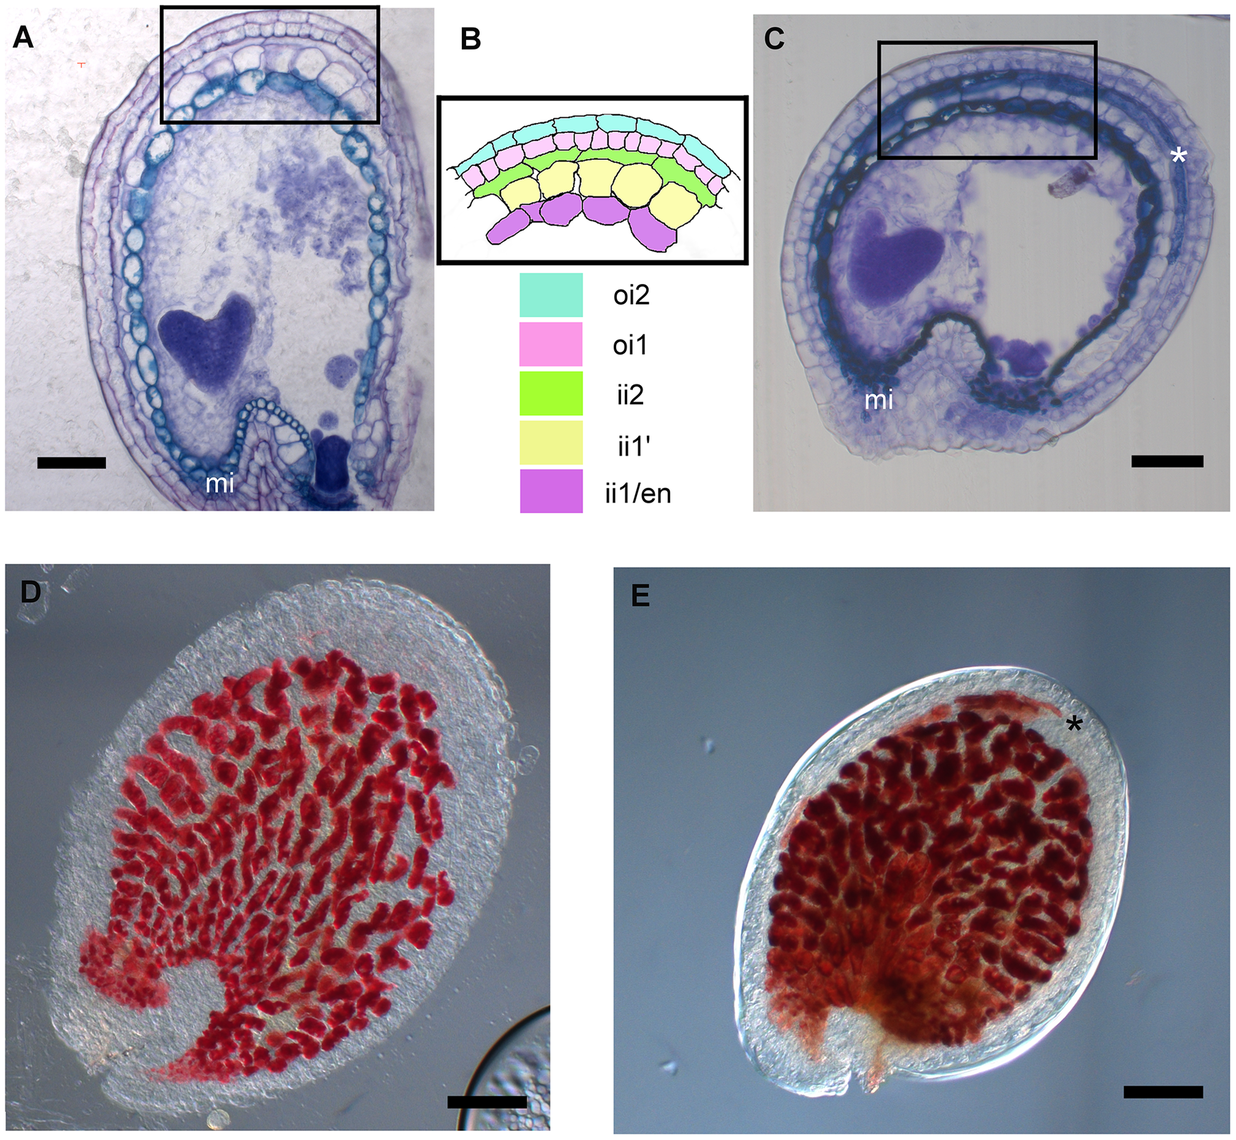 <i>stk</i> mutant seeds present defects in seed coat PA accumulation.